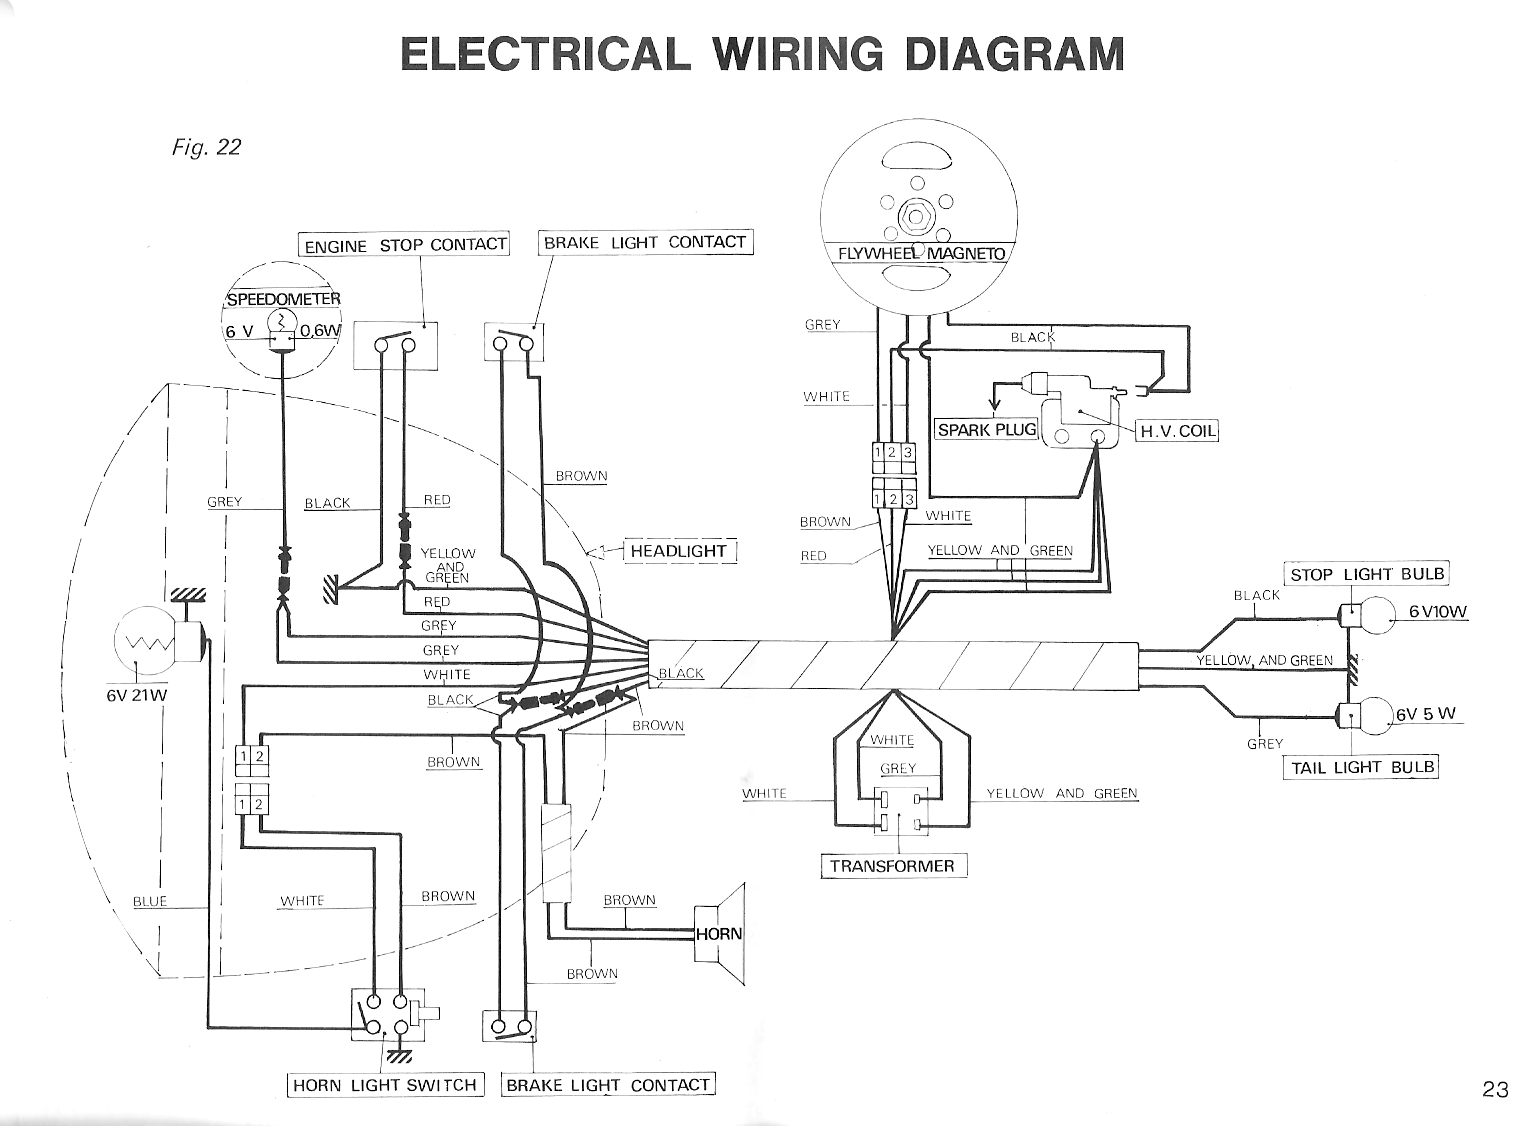 Terrific Wrg 9867 Peugeot Navigation Wiring Diagram Wiring Cloud Waroletkolfr09Org